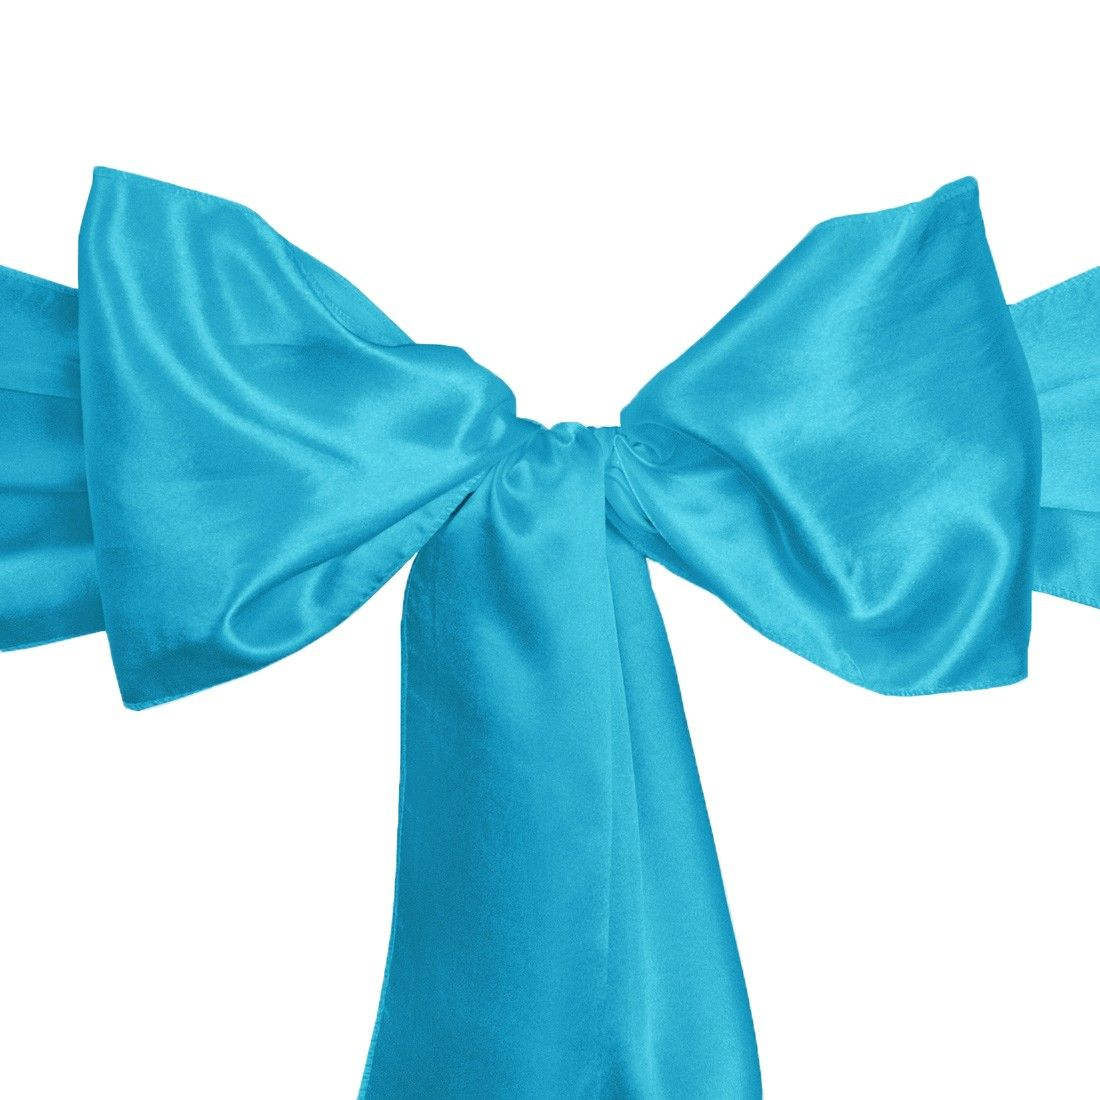 Chair Sashes For Weddings And Events At Linentablecloth Satin Shimmer Beautifully Are Perfect Accenting Banquet Folding